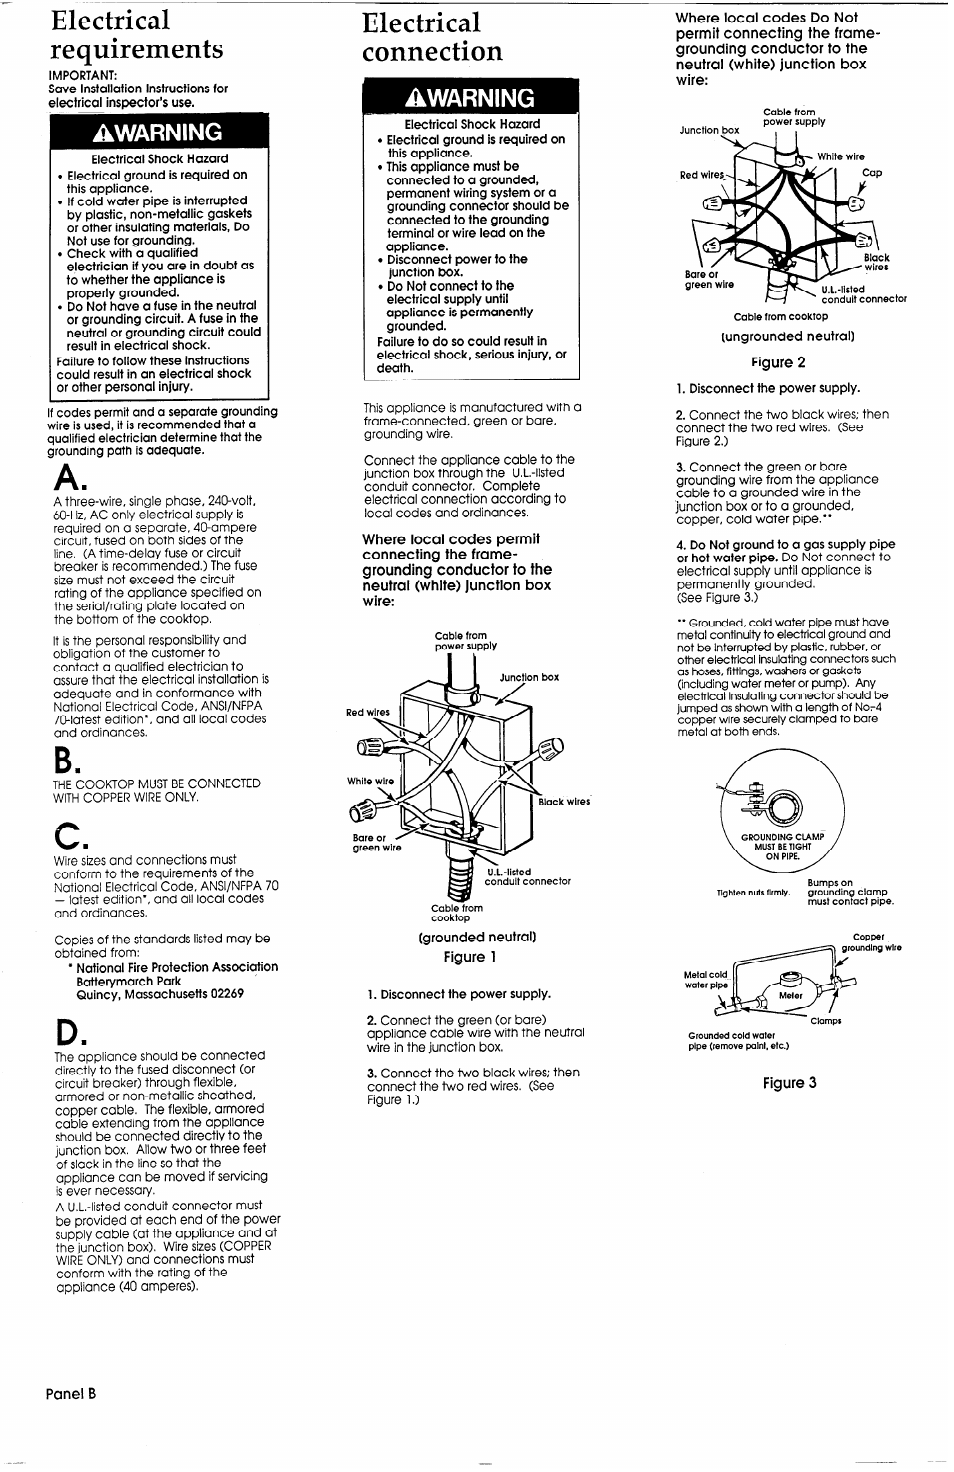 Electrical requirements, Electrical connection, Warning